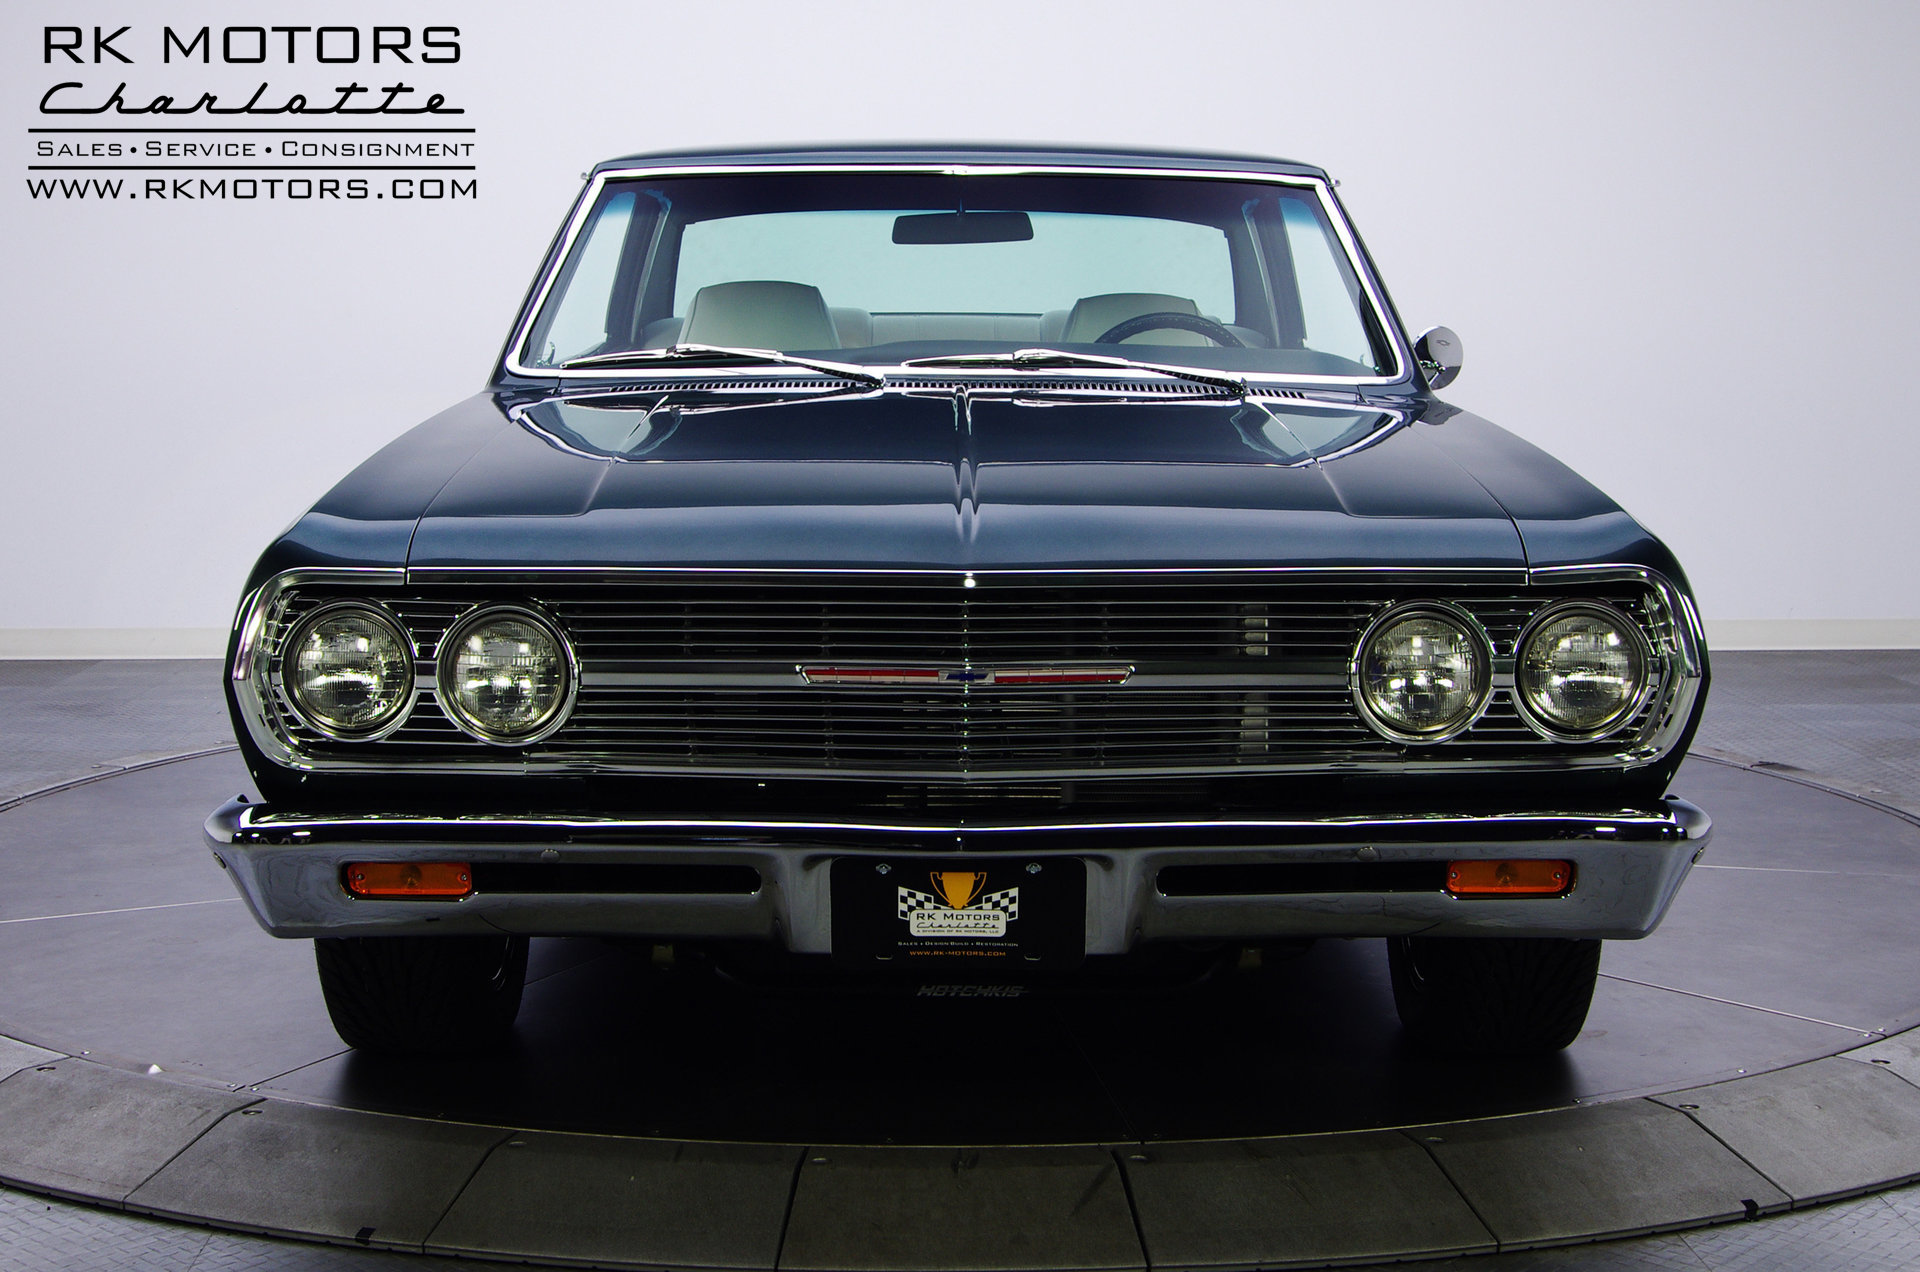 1965 Malibu Ss Wiring Diagram Electrical Diagrams 65 Engine Rear Power Window Explore Schematic Chevy Chevelle 132656